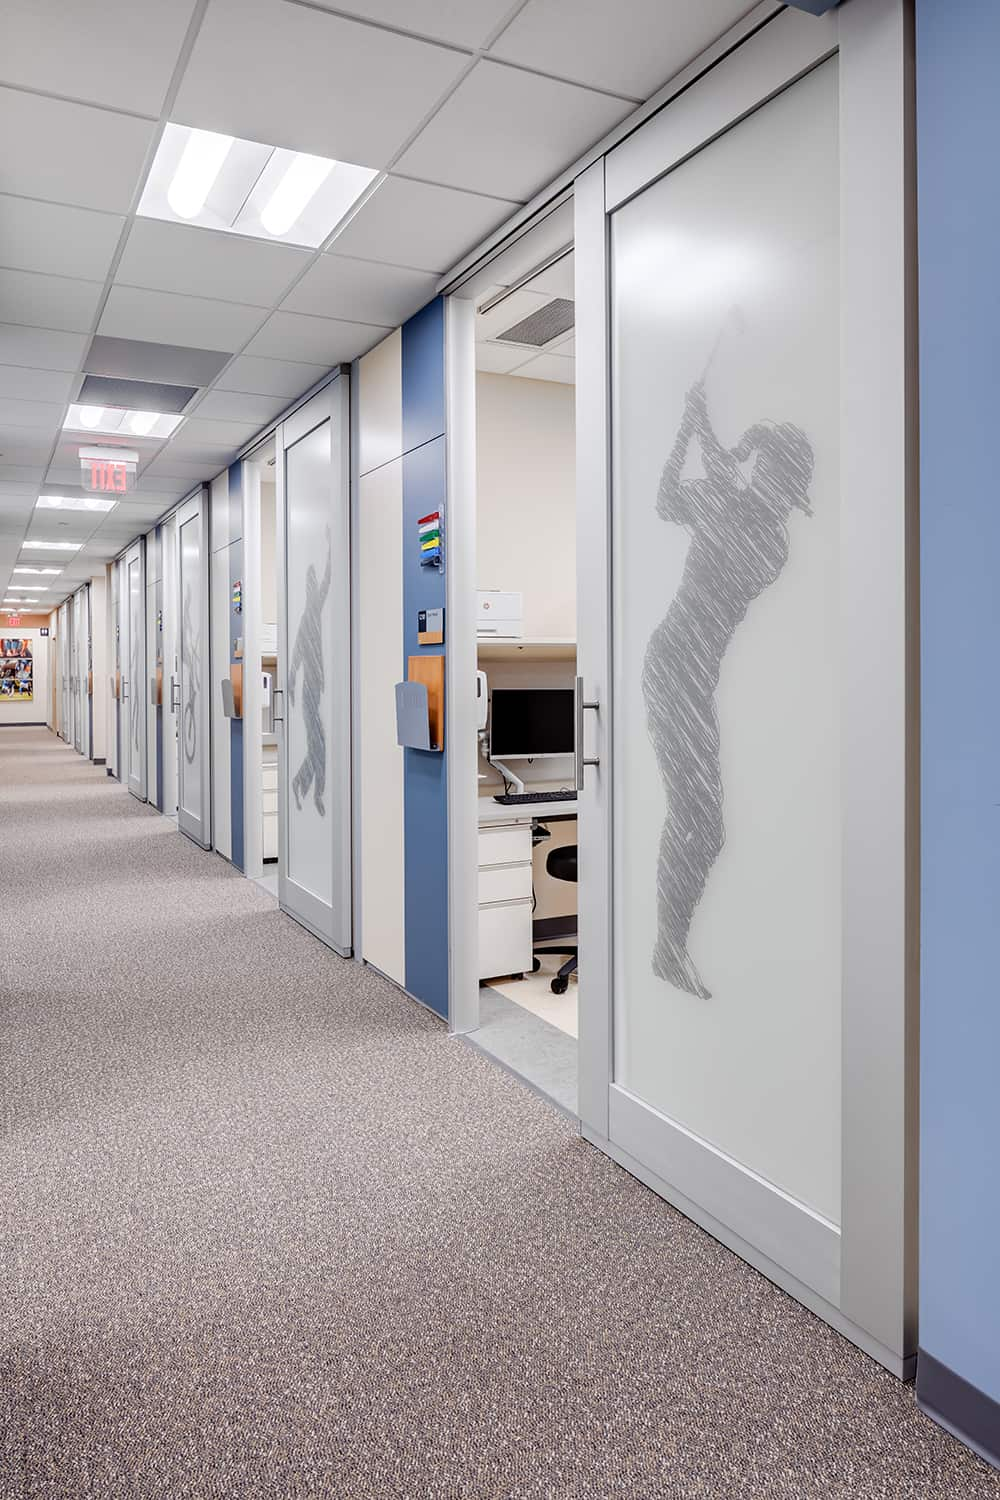 The orthopedic exam corridor with sports graphic film coverings on sliding exam room doors.